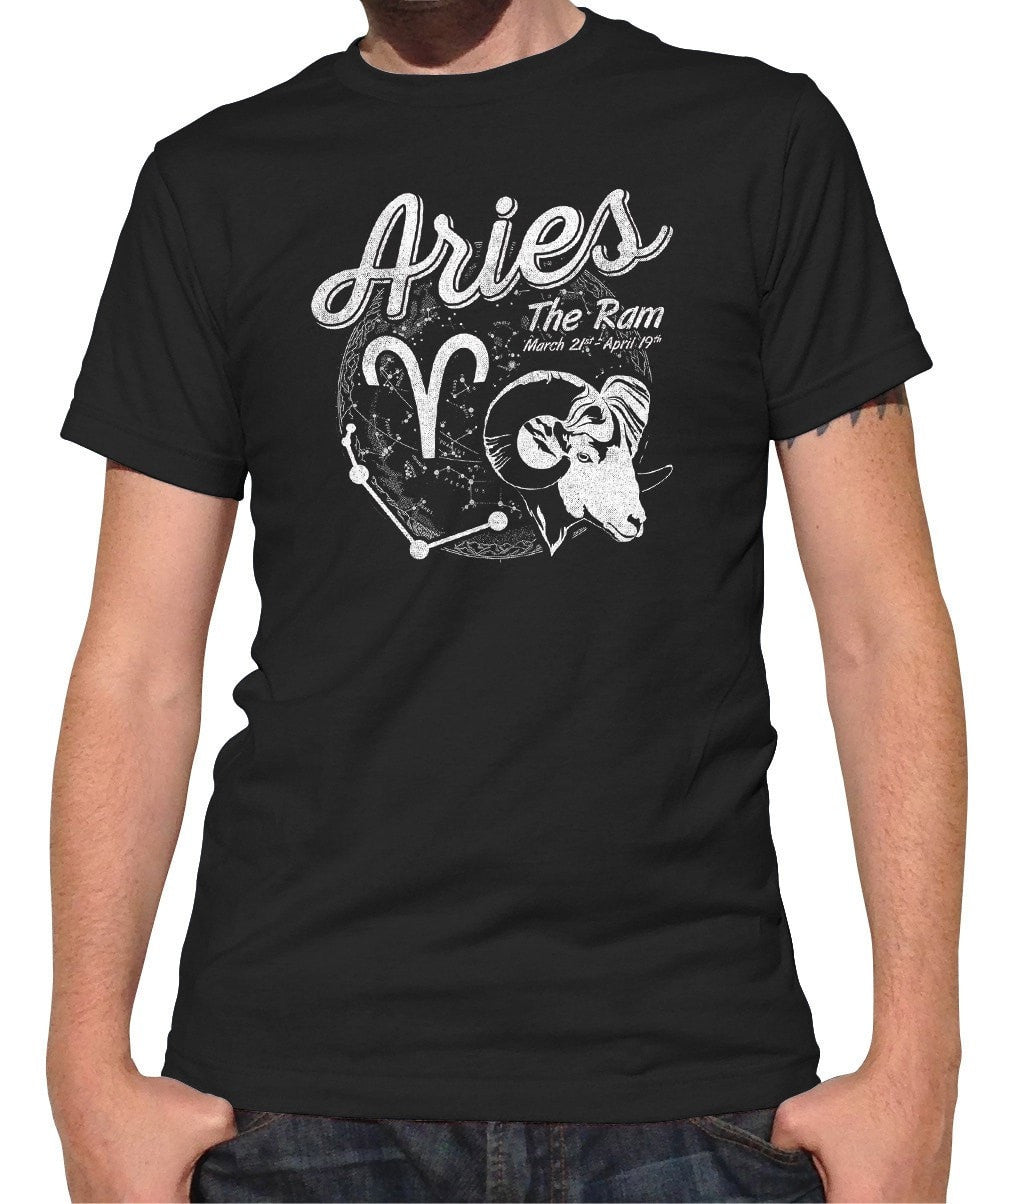 Men's Vintage Aries T-Shirt